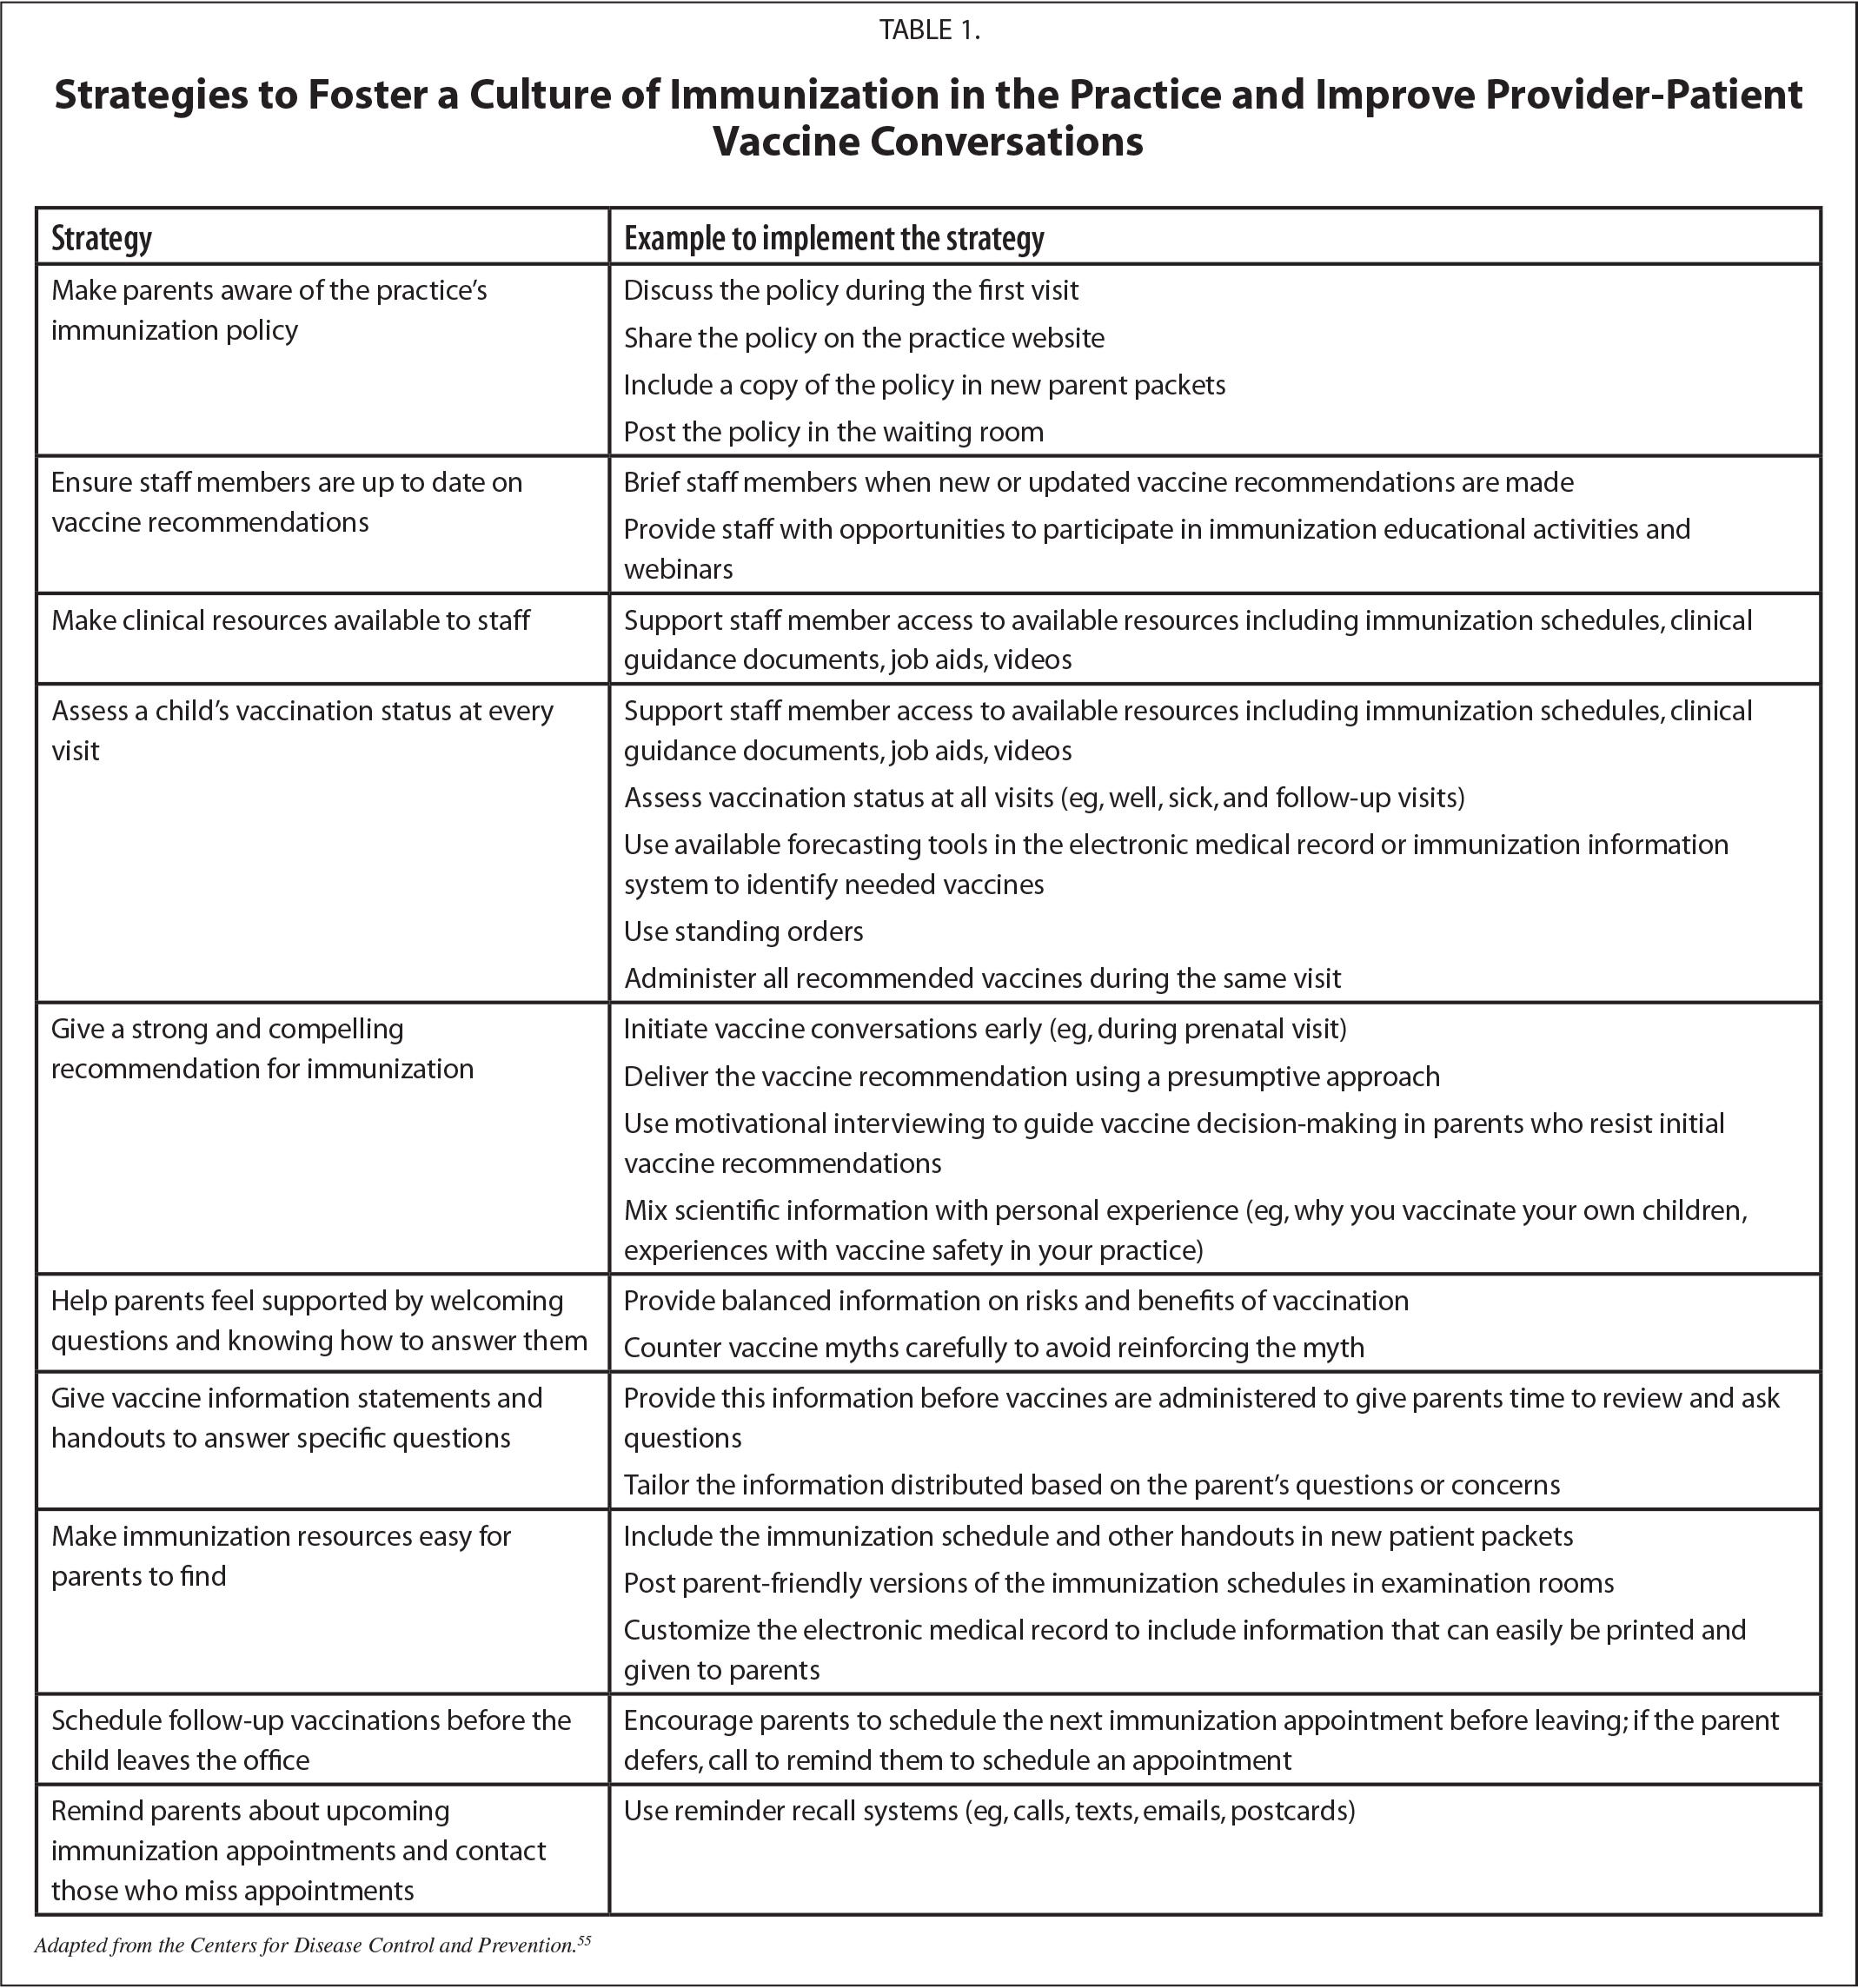 Strategies to Foster a Culture of Immunization in the Practice and Improve Provider-Patient Vaccine Conversations